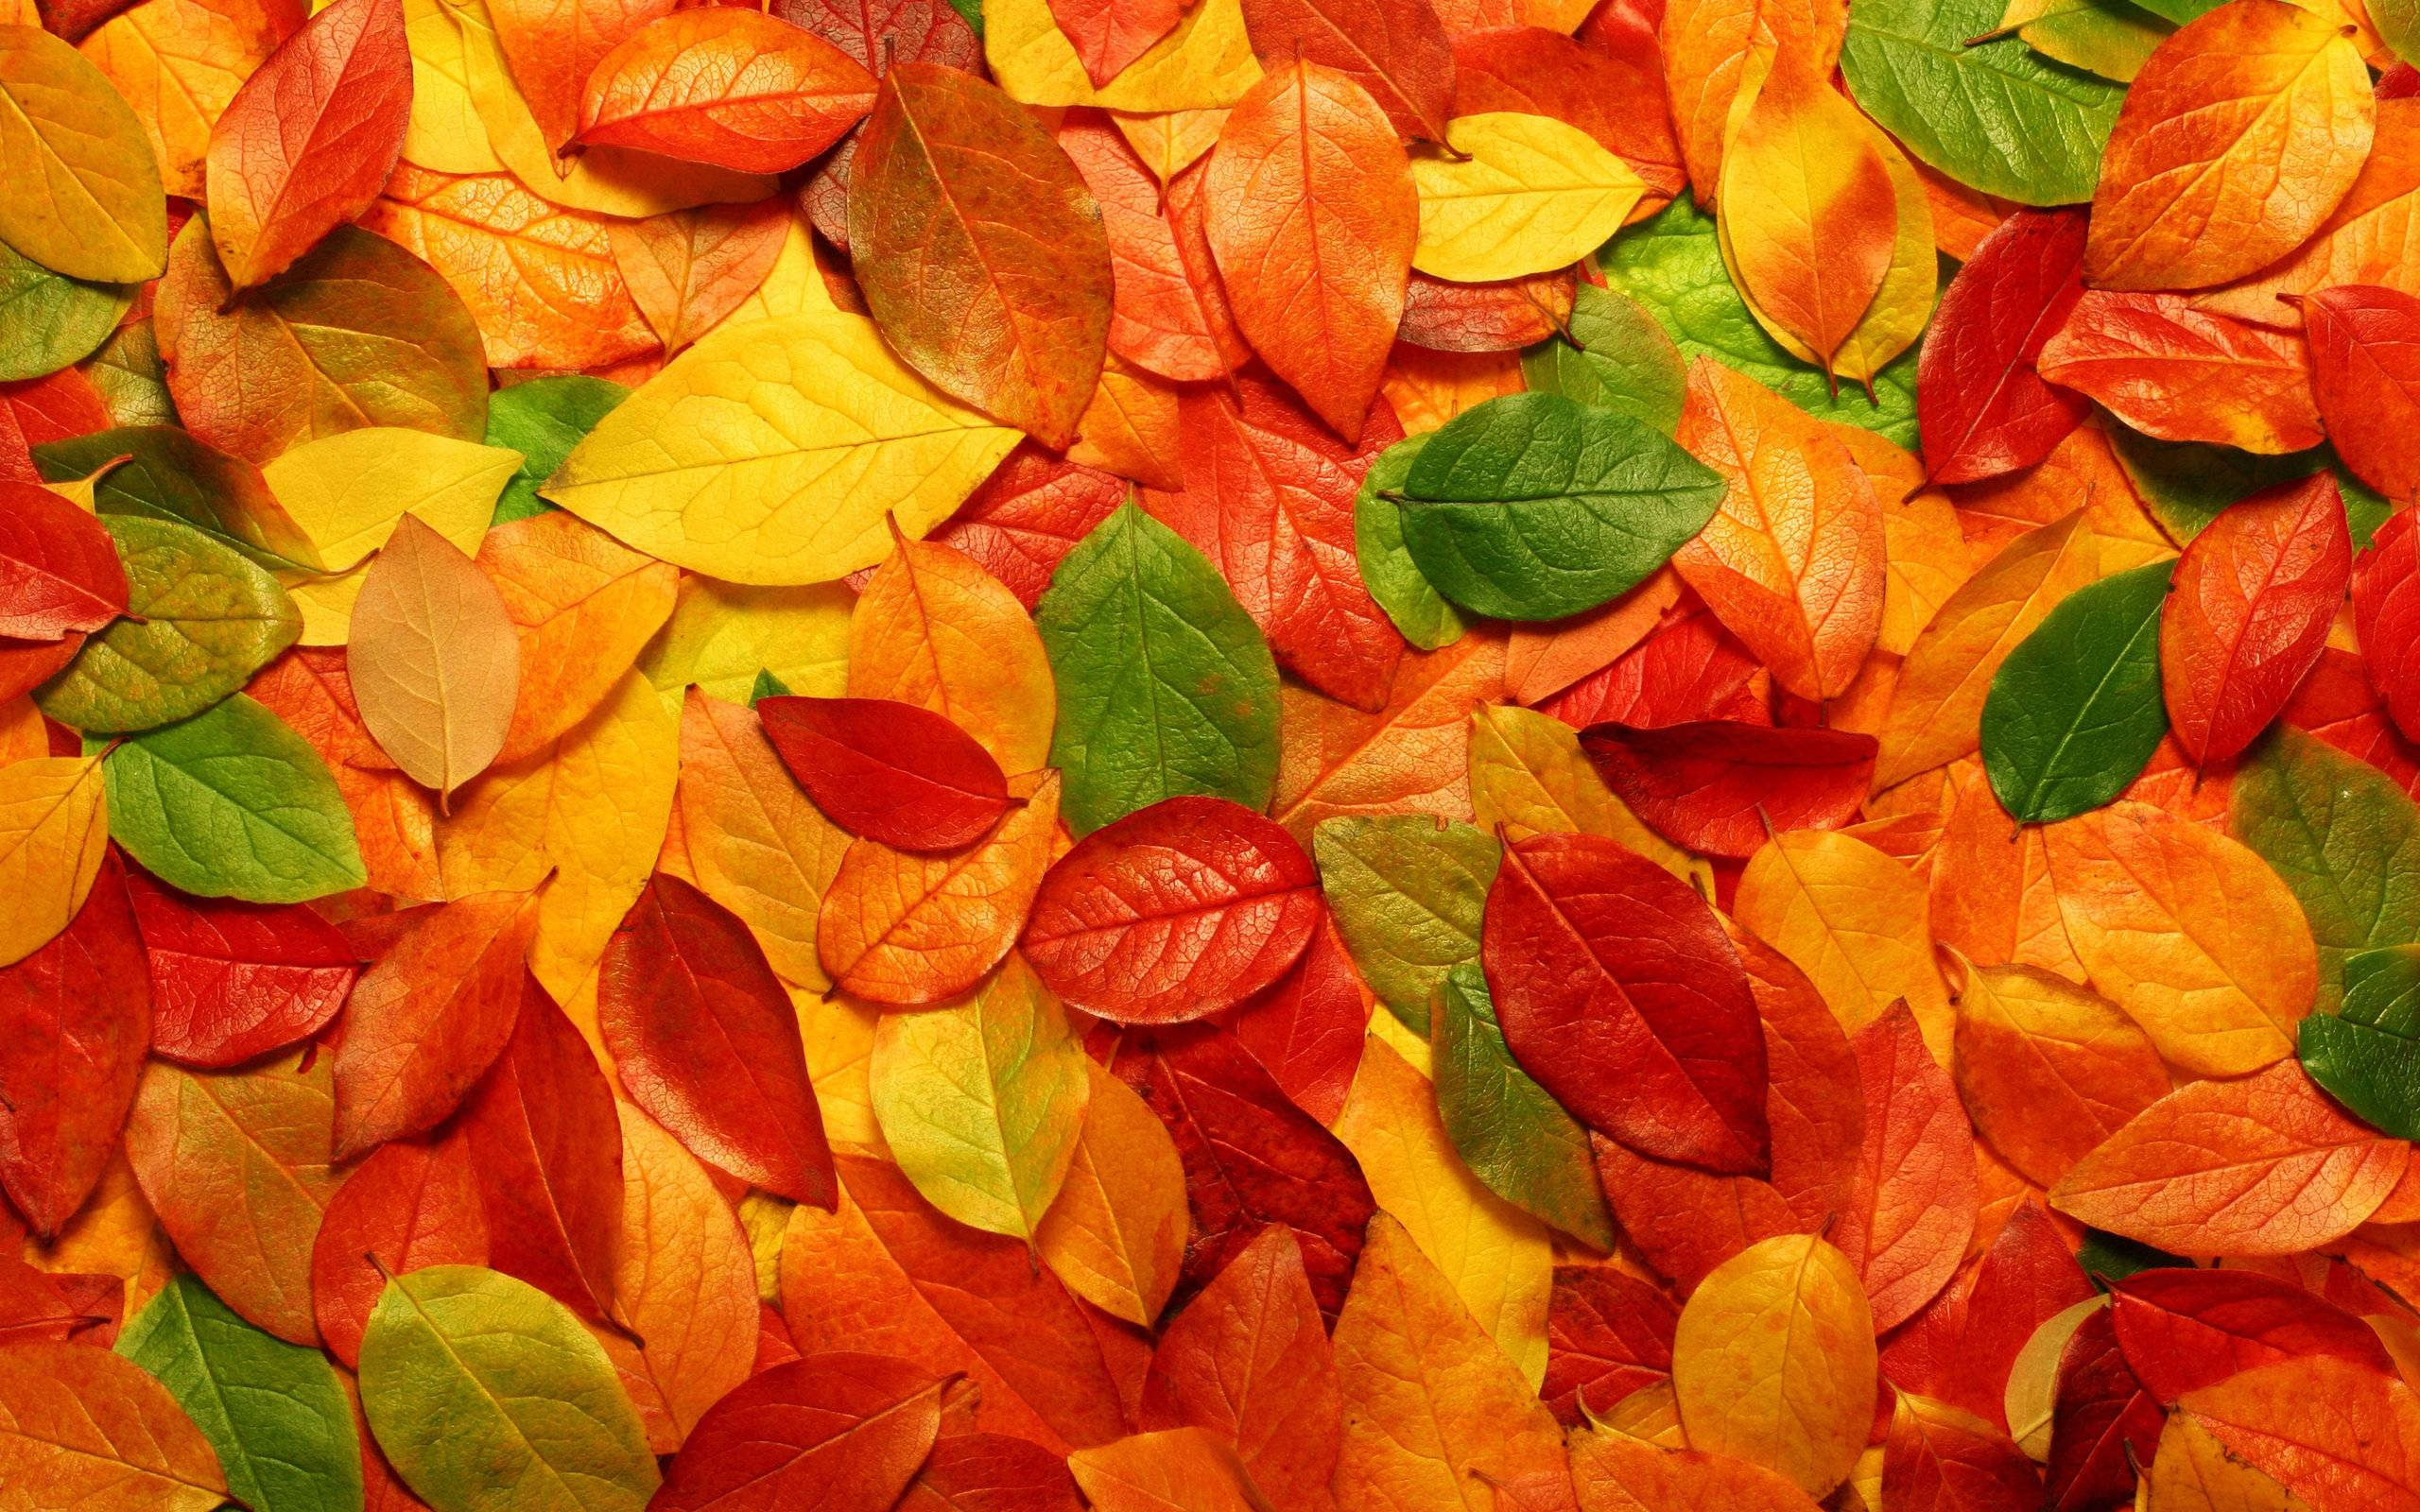 2560x1600 desktop wallpaper fall foliage www